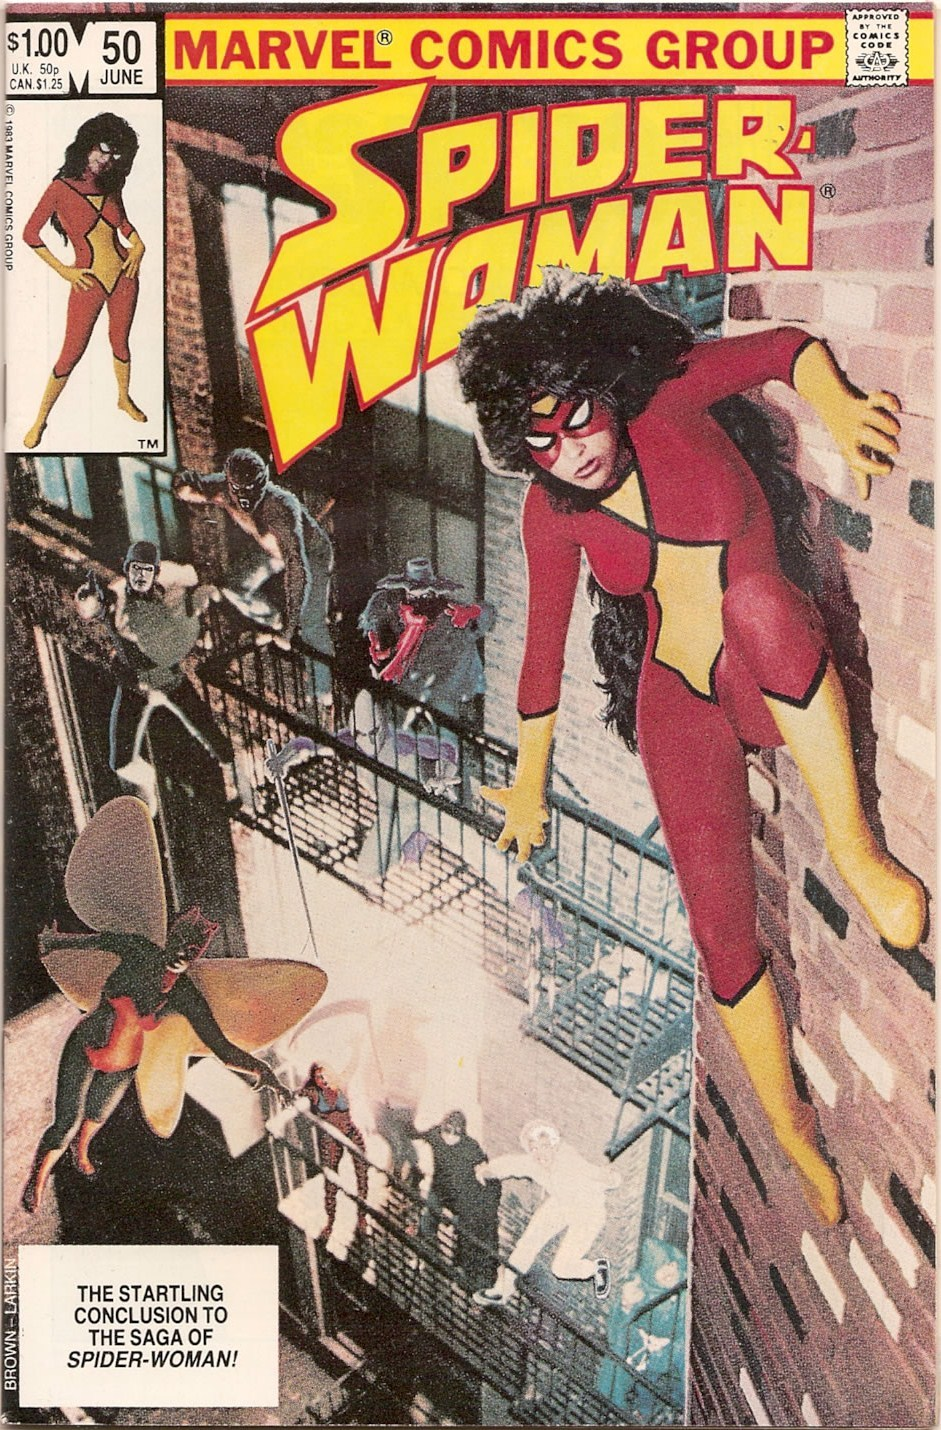 Spider-Woman #50. Photographer: Eliot R. Brown. 1983.